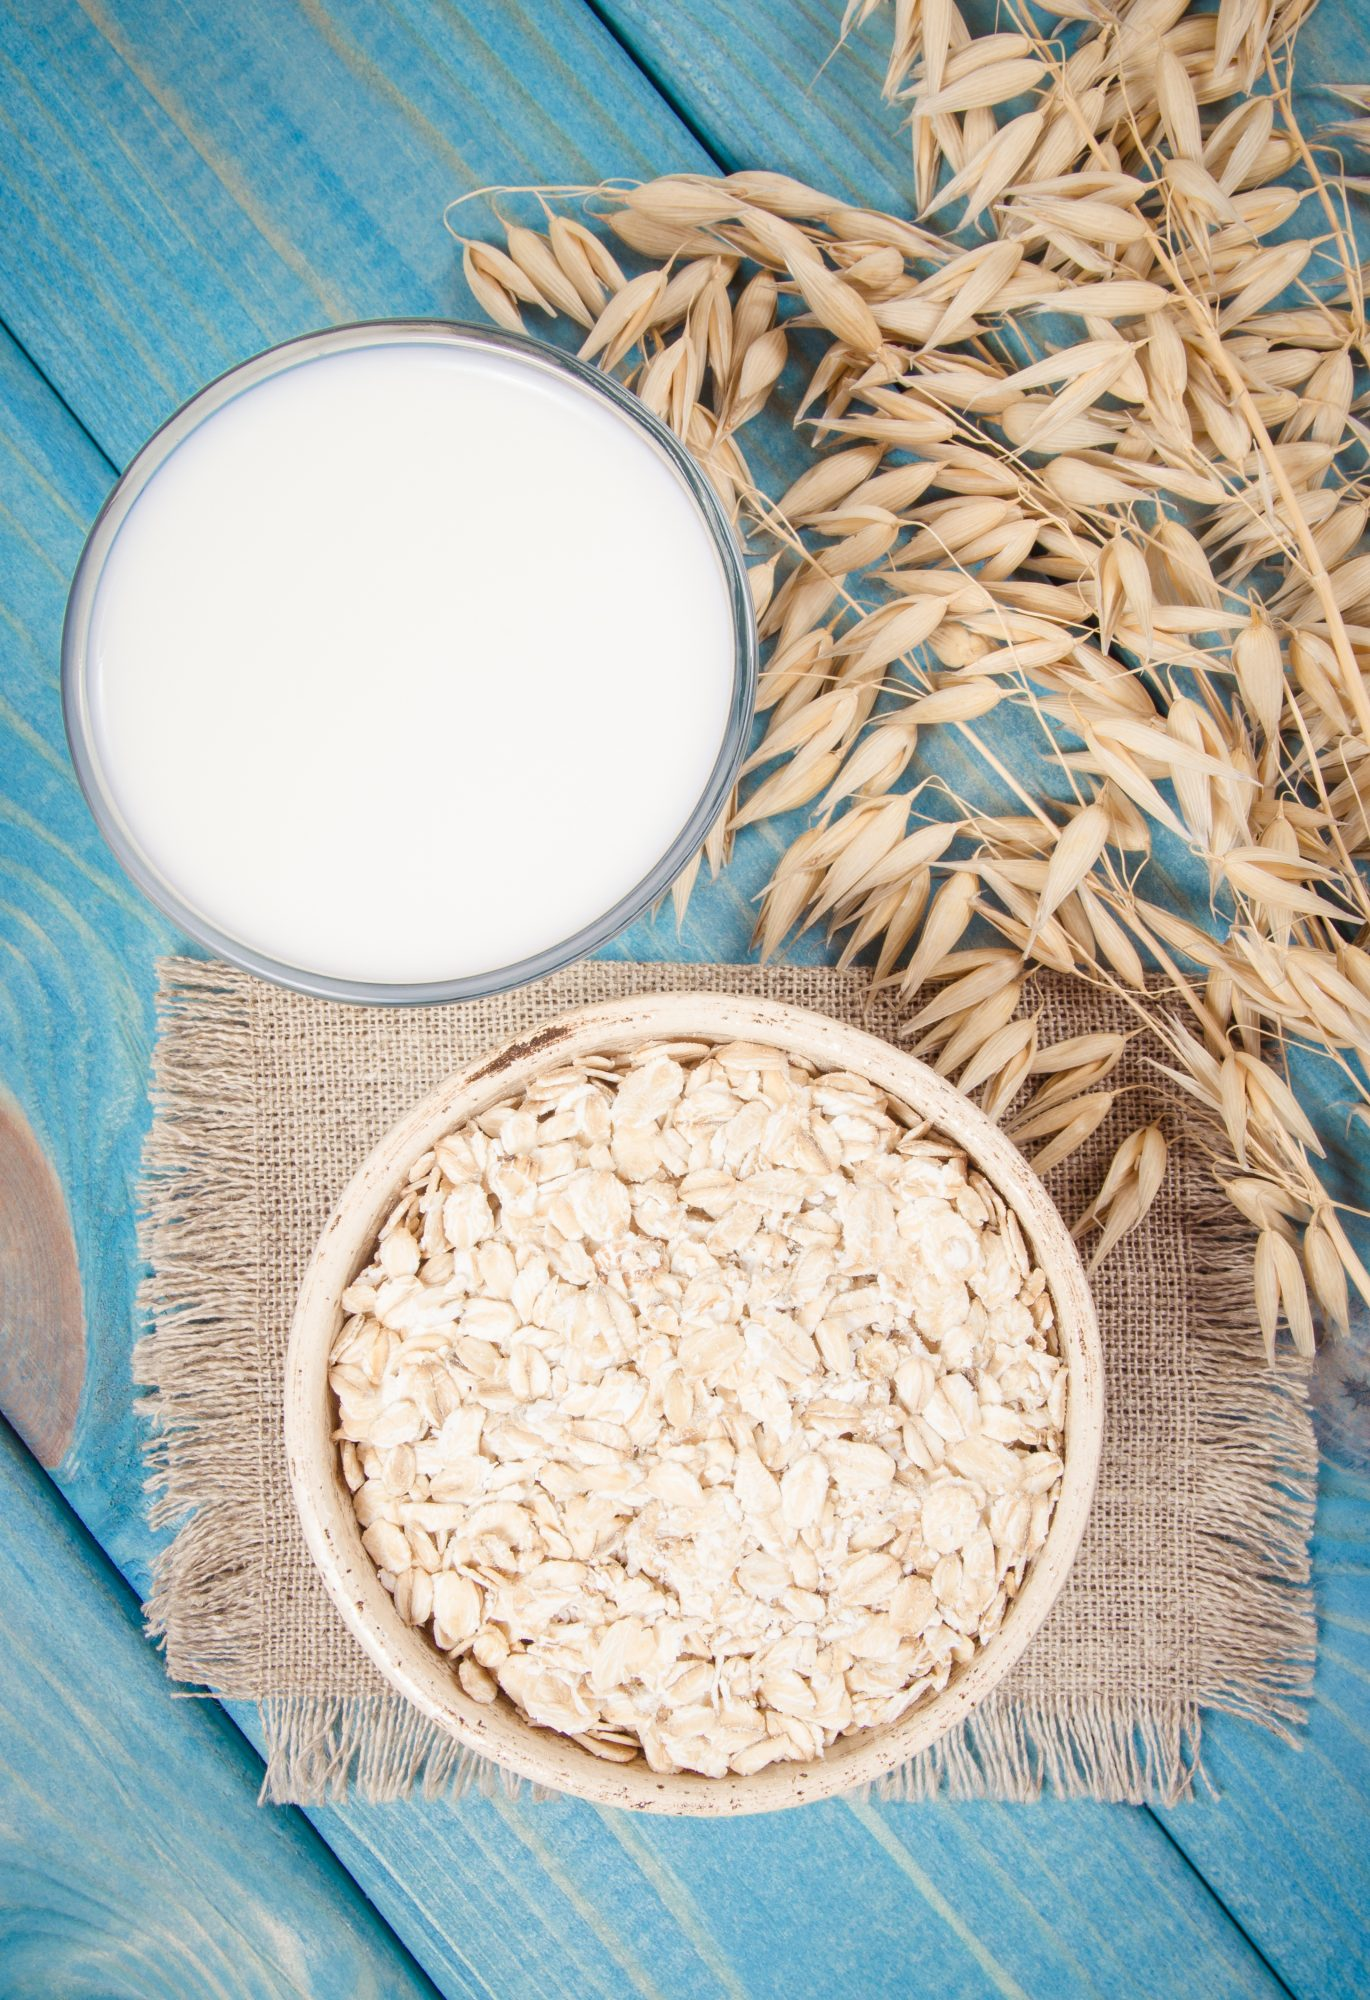 Oat Milk Is the Latest Trendy Non-Dairy Milk—but Is It Actually Healthy?